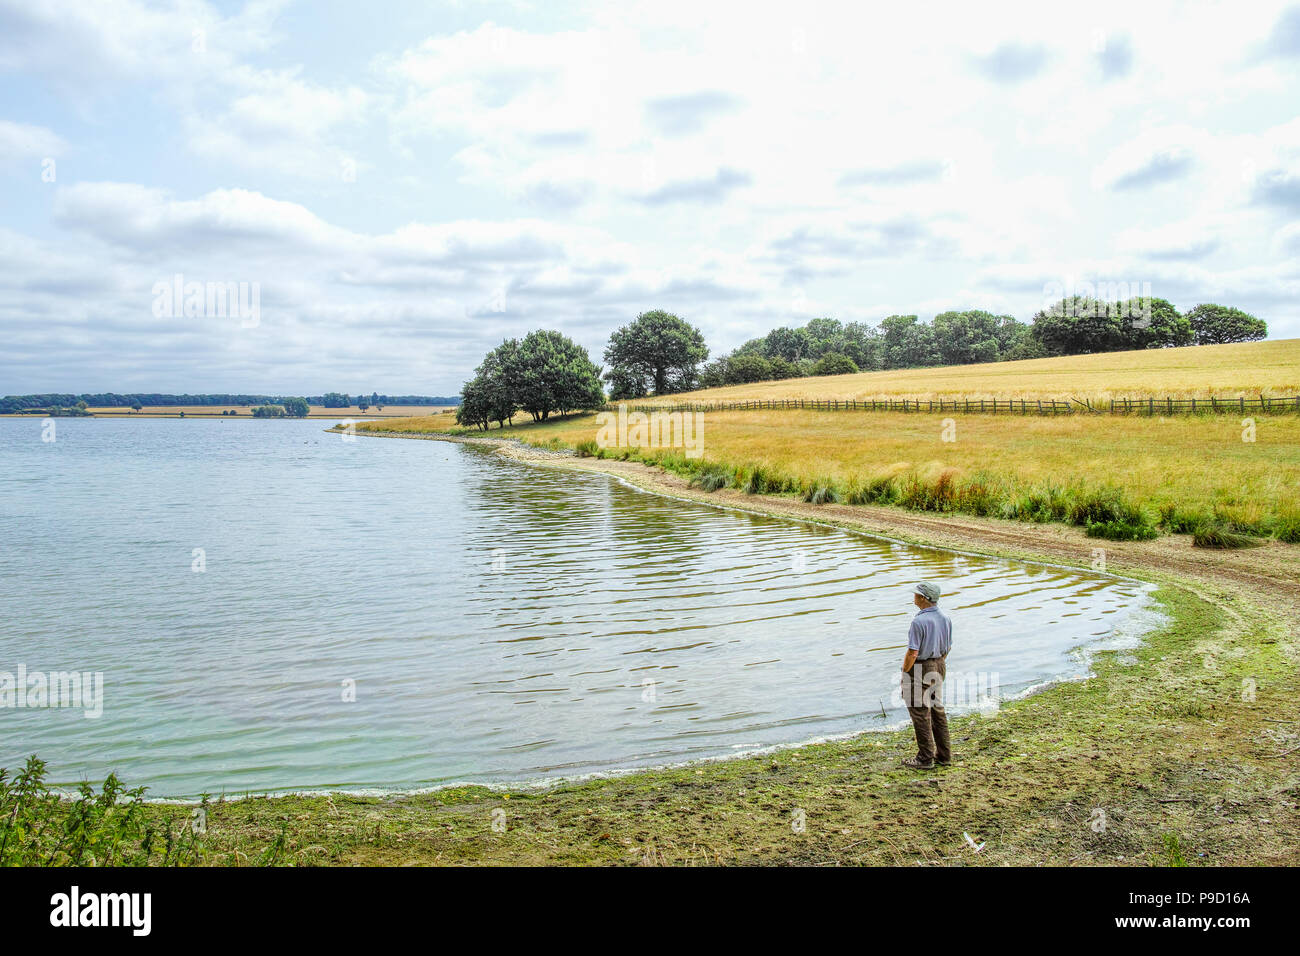 A man stands on the shore of a lake in a parkland on a summer's day in rural England. - Stock Image